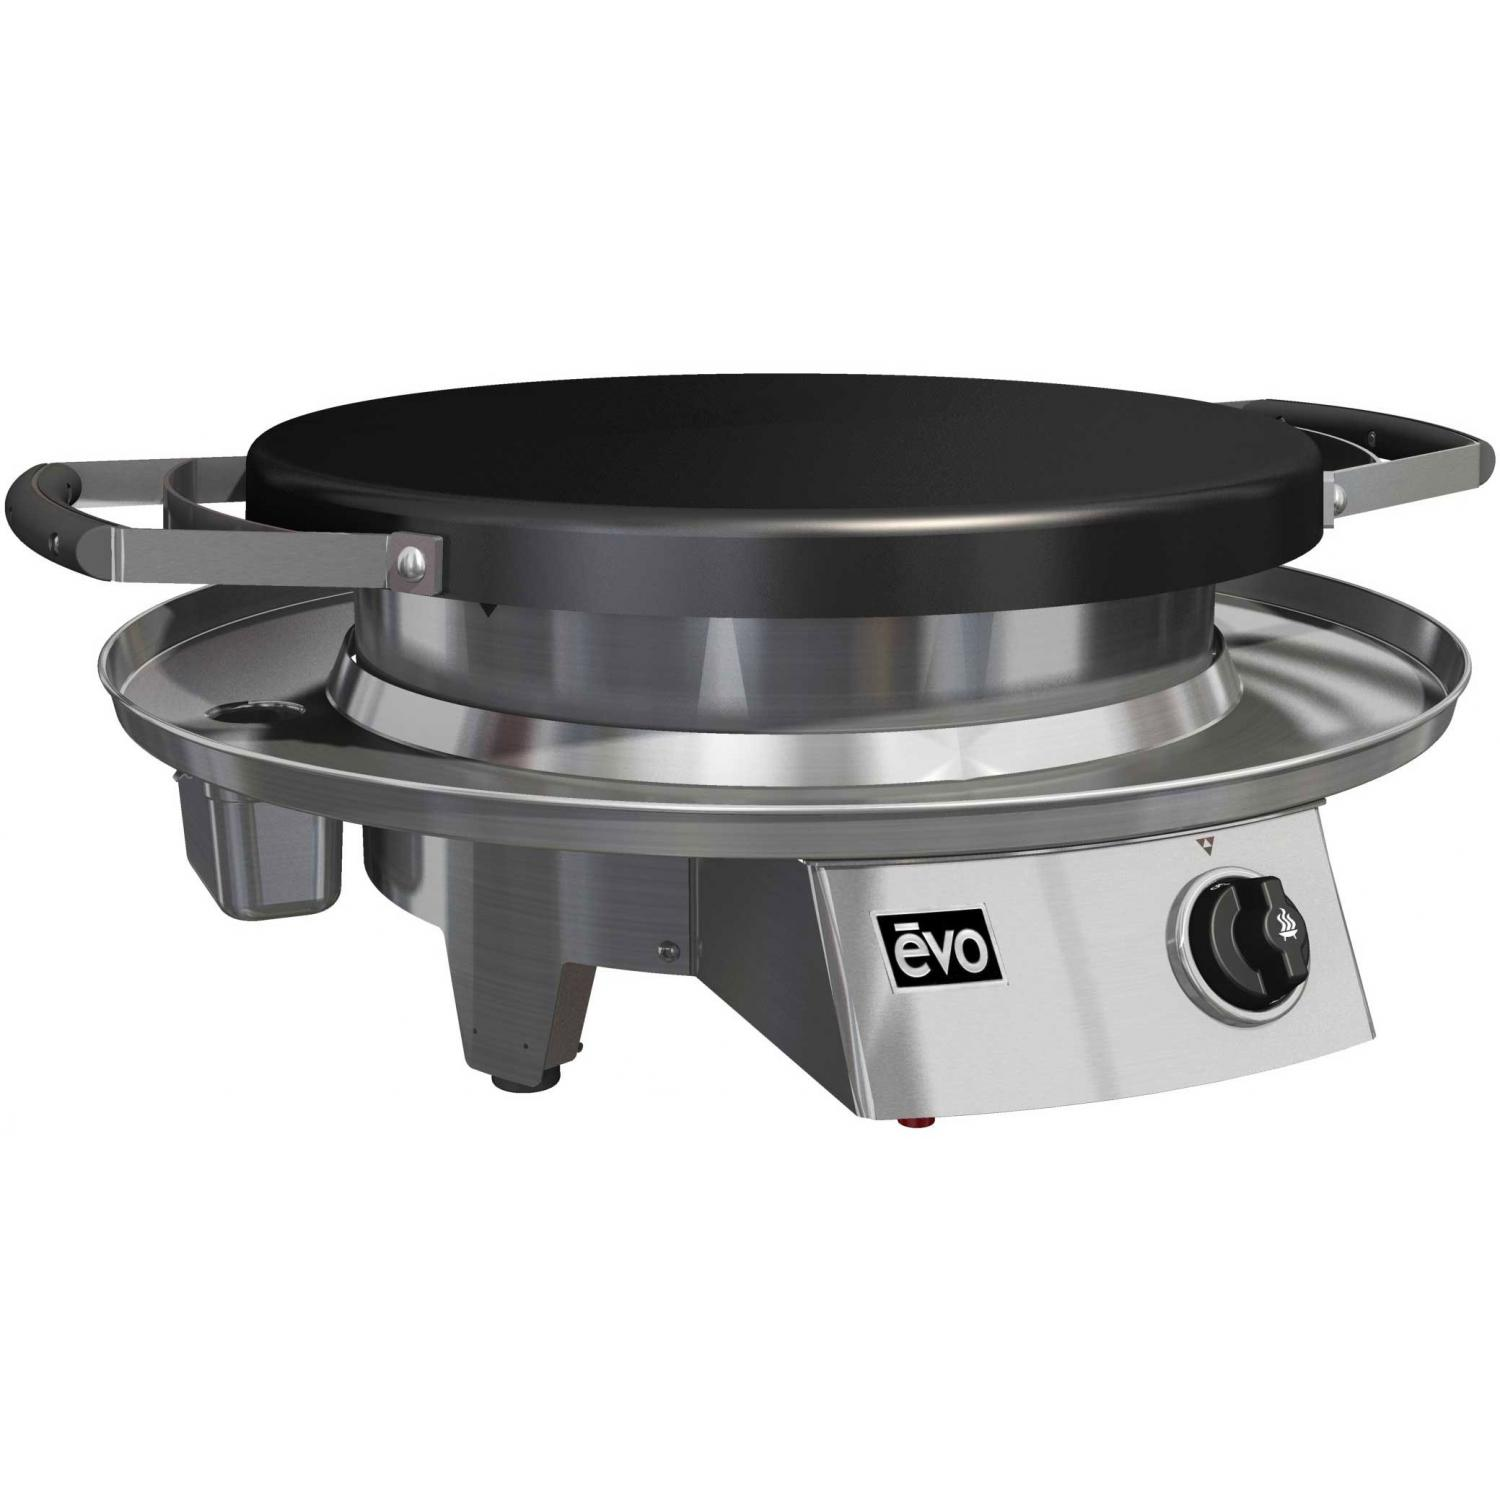 Evo Companion Classic Tabletop Flattop Grill - Natural Gas